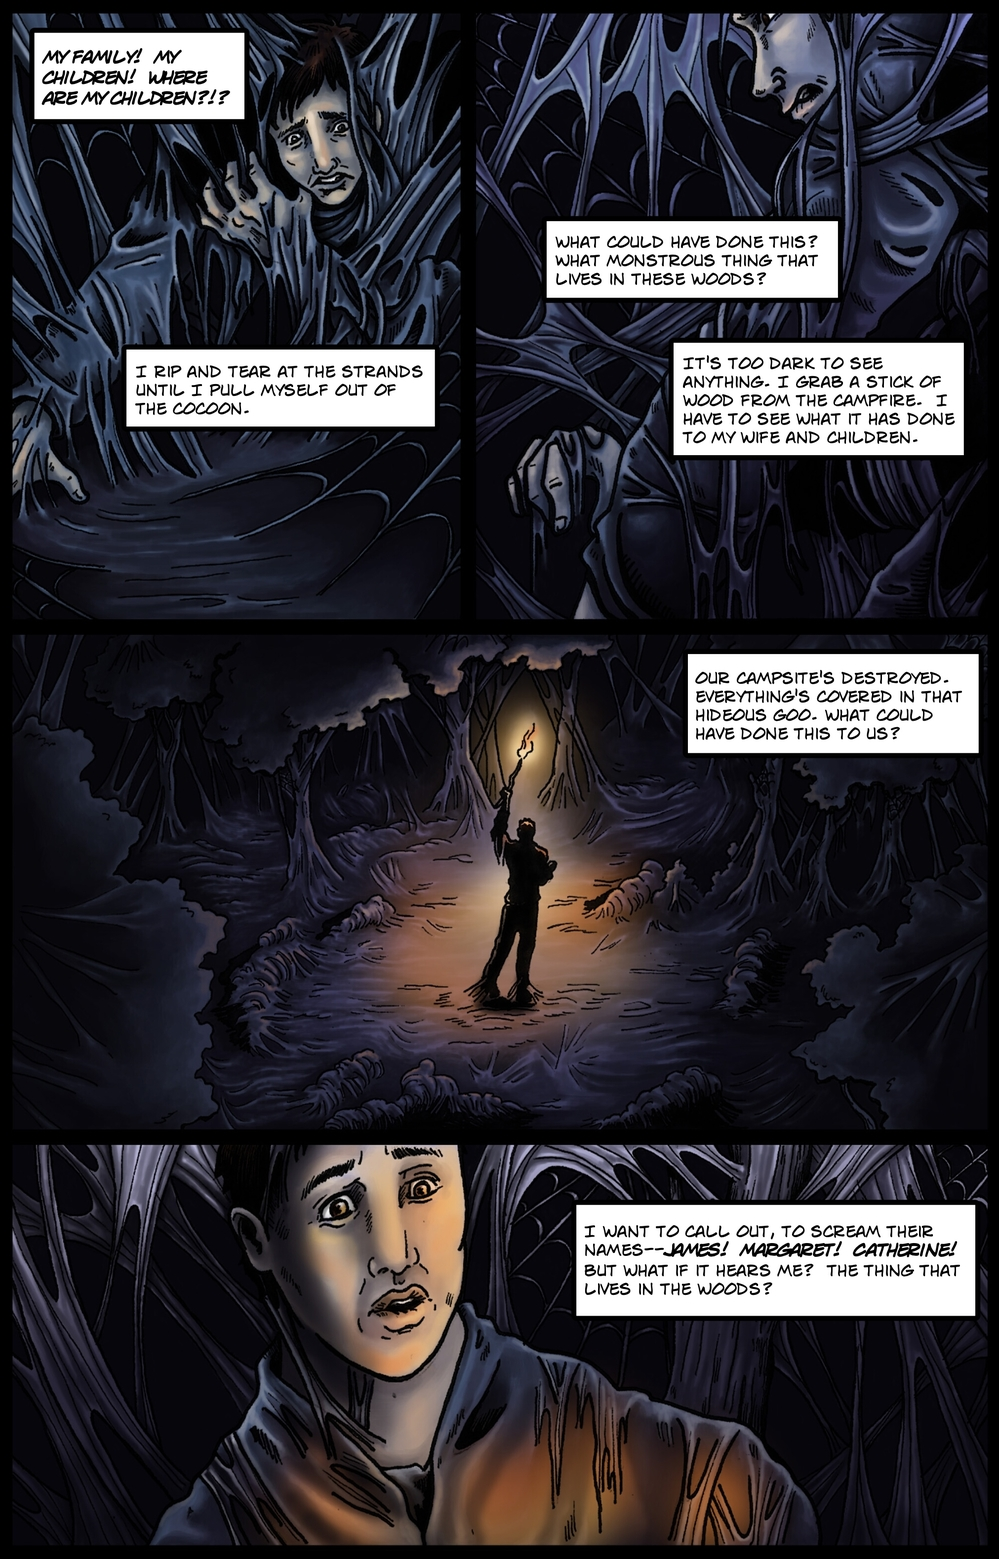 COCOON page 3 - story 9 in The Book of Lies